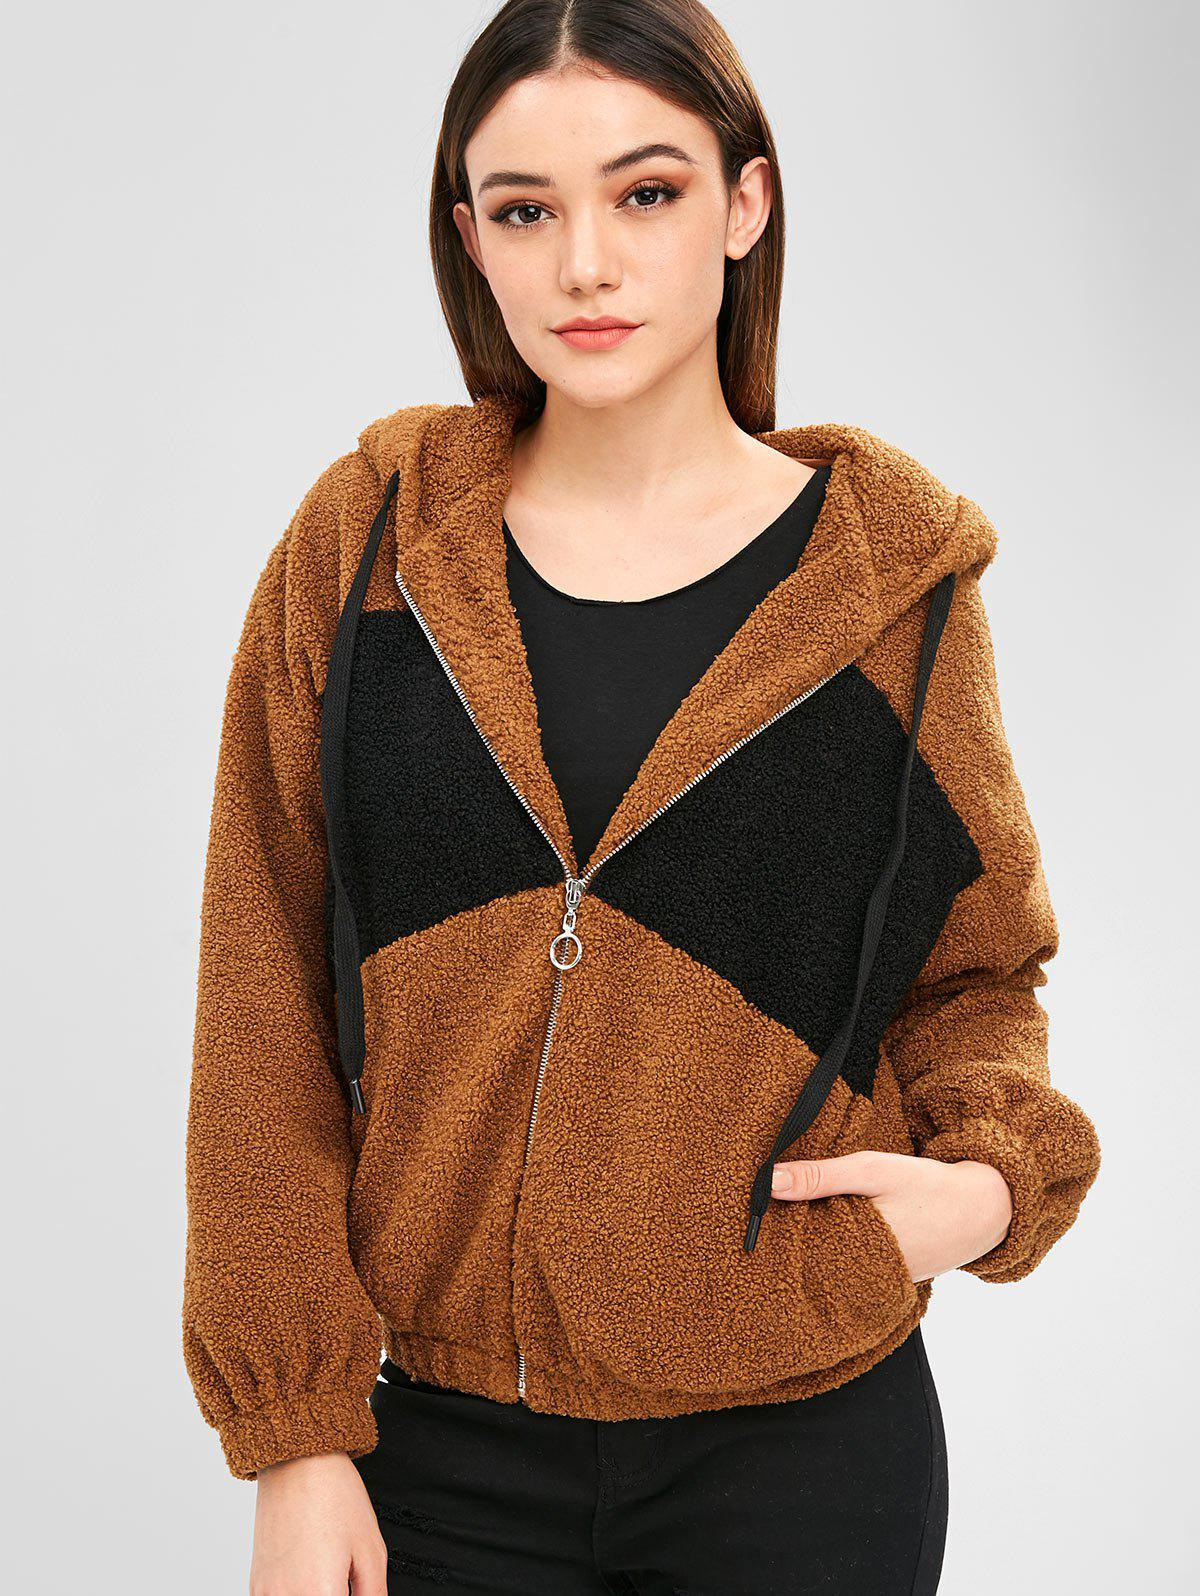 ZAFUL Two Tone Zip Up Fluffy Teddy Coat, Brown